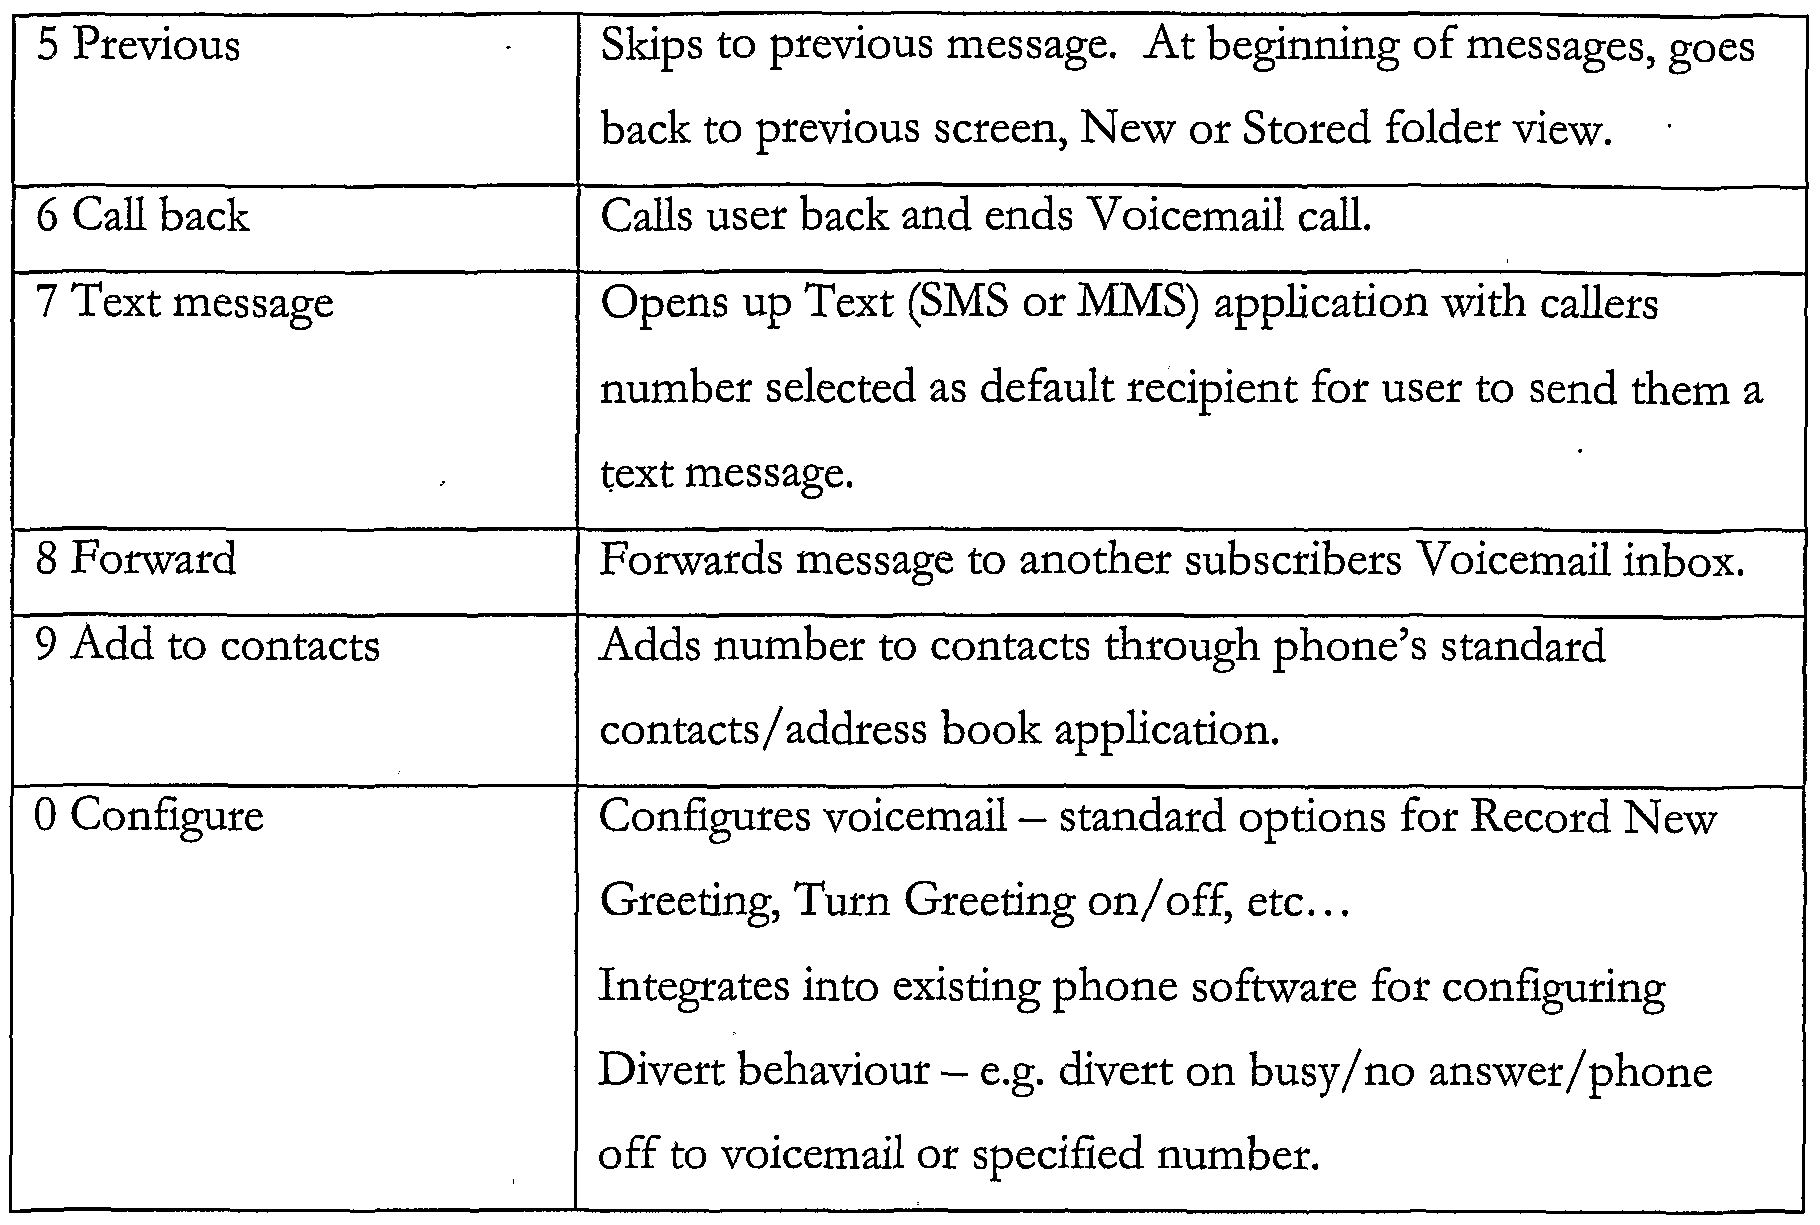 Voicemail greeting script images greeting card examples fine voicemail greeting template pictures inspiration the best wo2004095814a1 a method of managing voicemails from a kristyandbryce Image collections